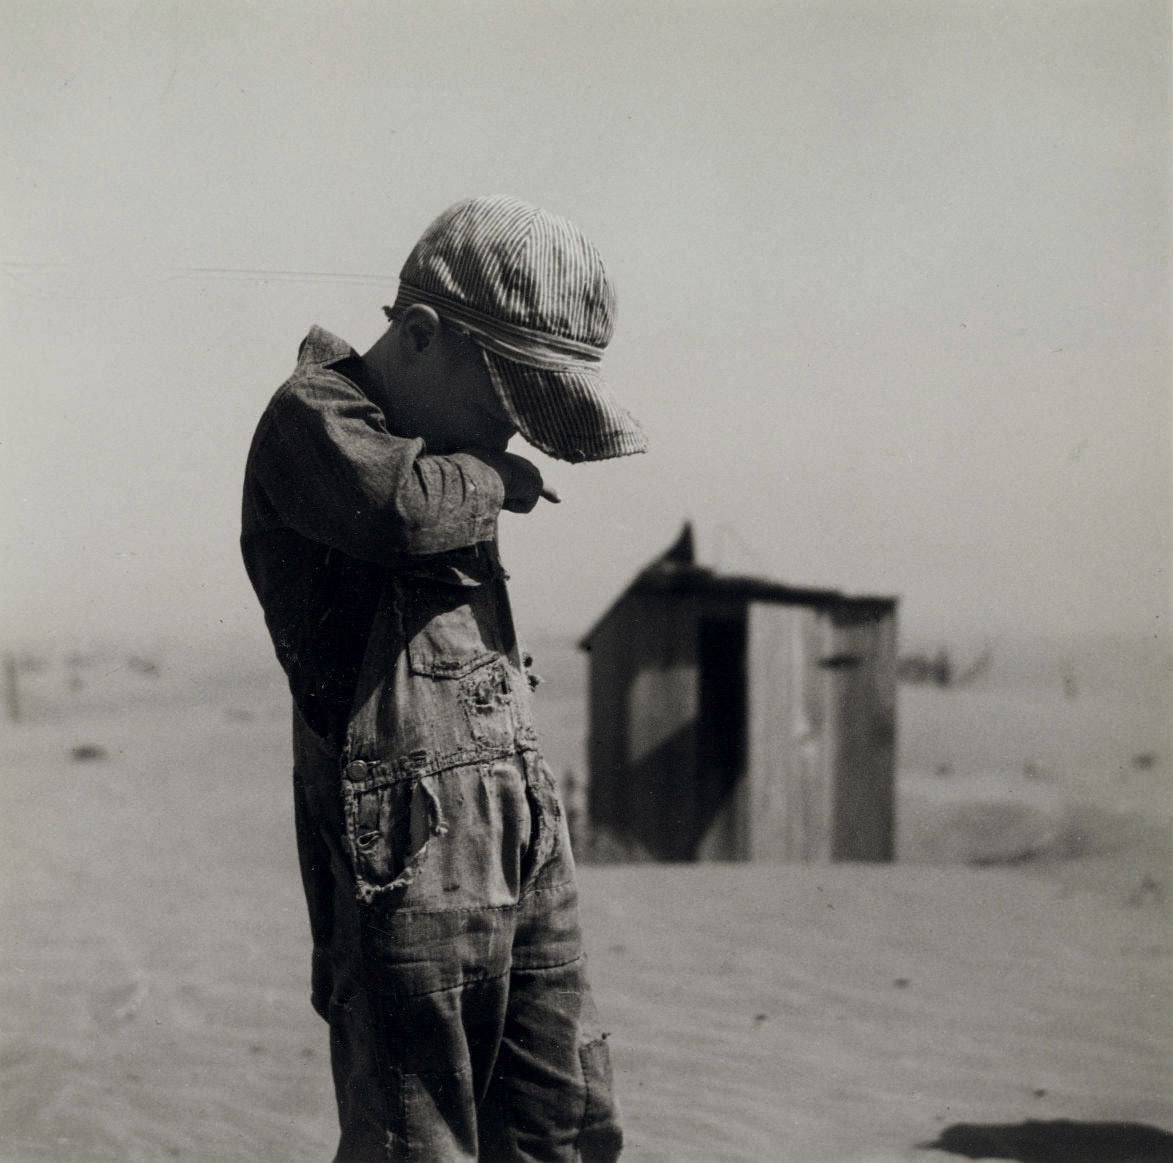 Dust is too much for the son of a farmer in Cimarron Co., Okla., 1933